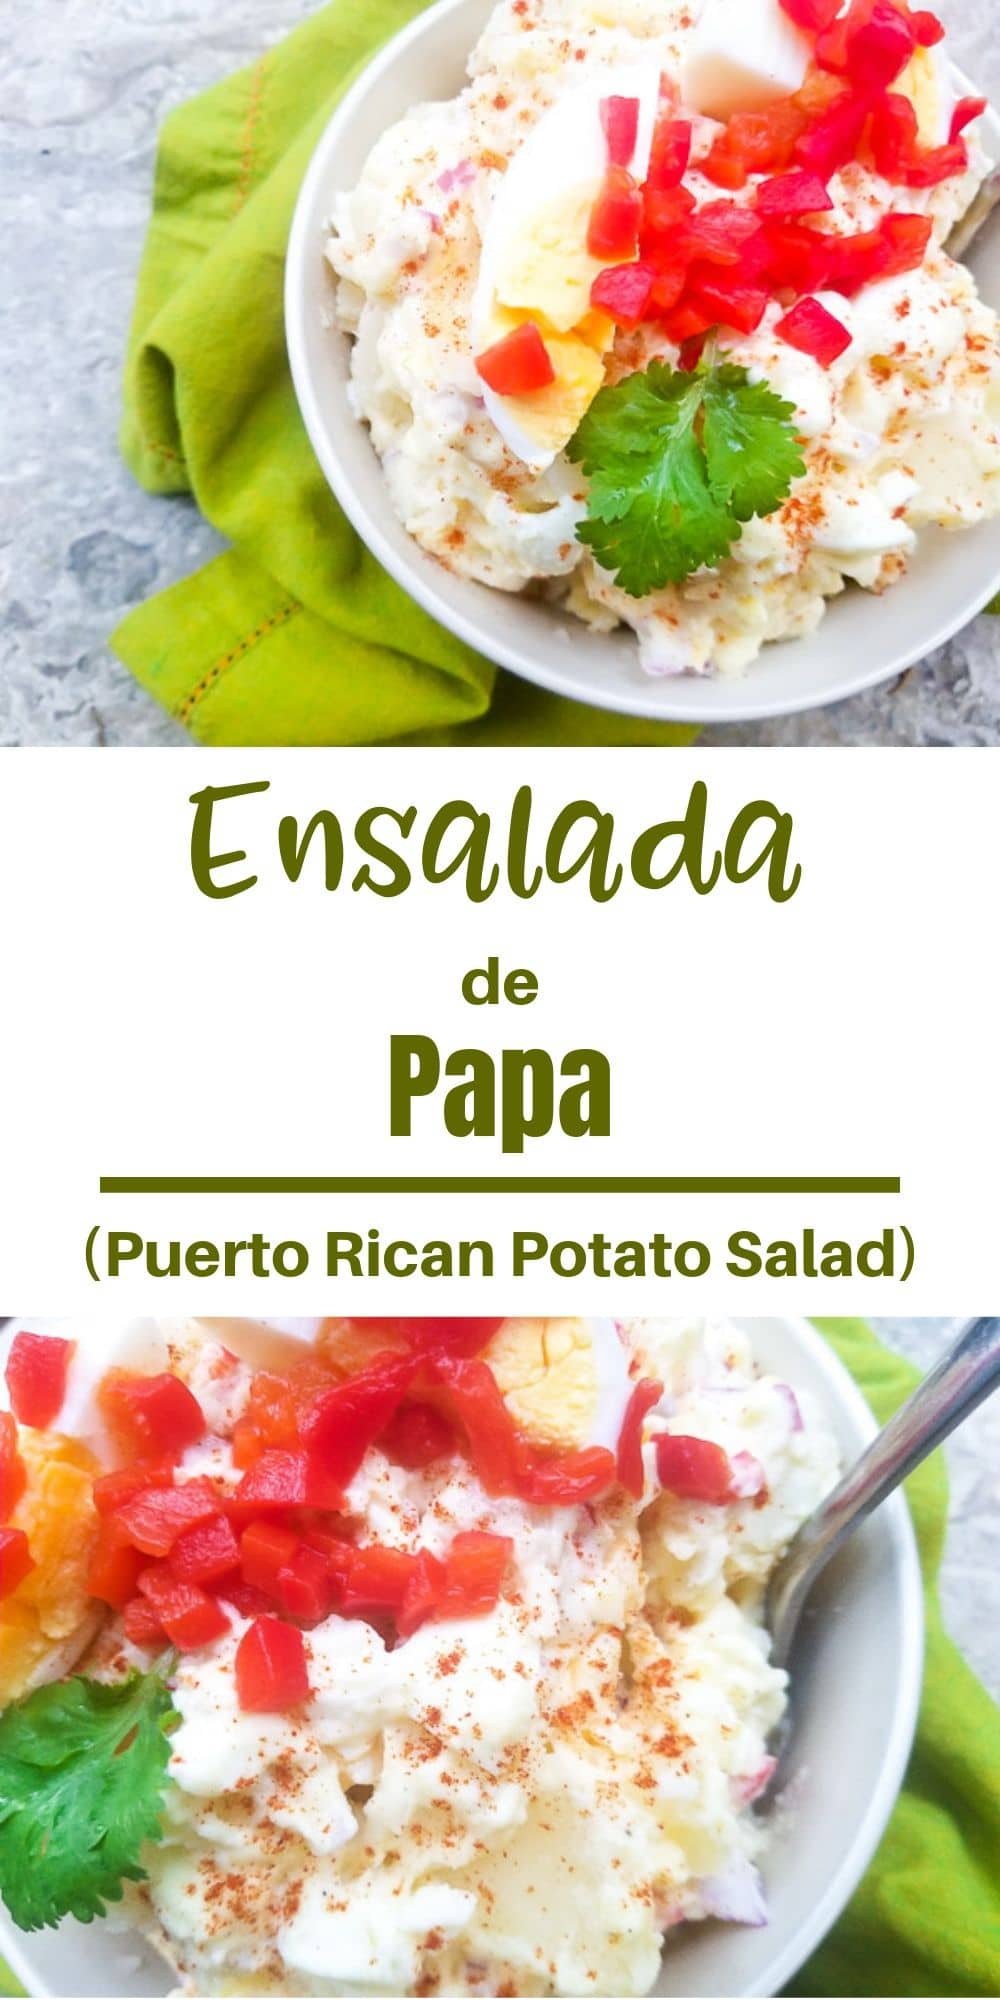 This Ensalada de Papa (Puerto Rican Potato Salad) is creamy and all kinds of delicious!  Made with boiled potatoes, red onions, red peppers, boiled eggs, mayonnaise, vinegar, salt and pepper.  A yummy, no fuss potato salad.  The perfect side to any meal! #ensaladadepapa #ensaladas #ensaladasdepapa #puertoricanpotatosalad #thanksgiving #thanksgivingfood #thanksgivingdishes #thanksgivingsides #christmasdishes #christmasrecipes #christmassidedishes #puertoricanfood #mexicanappetizersandmore